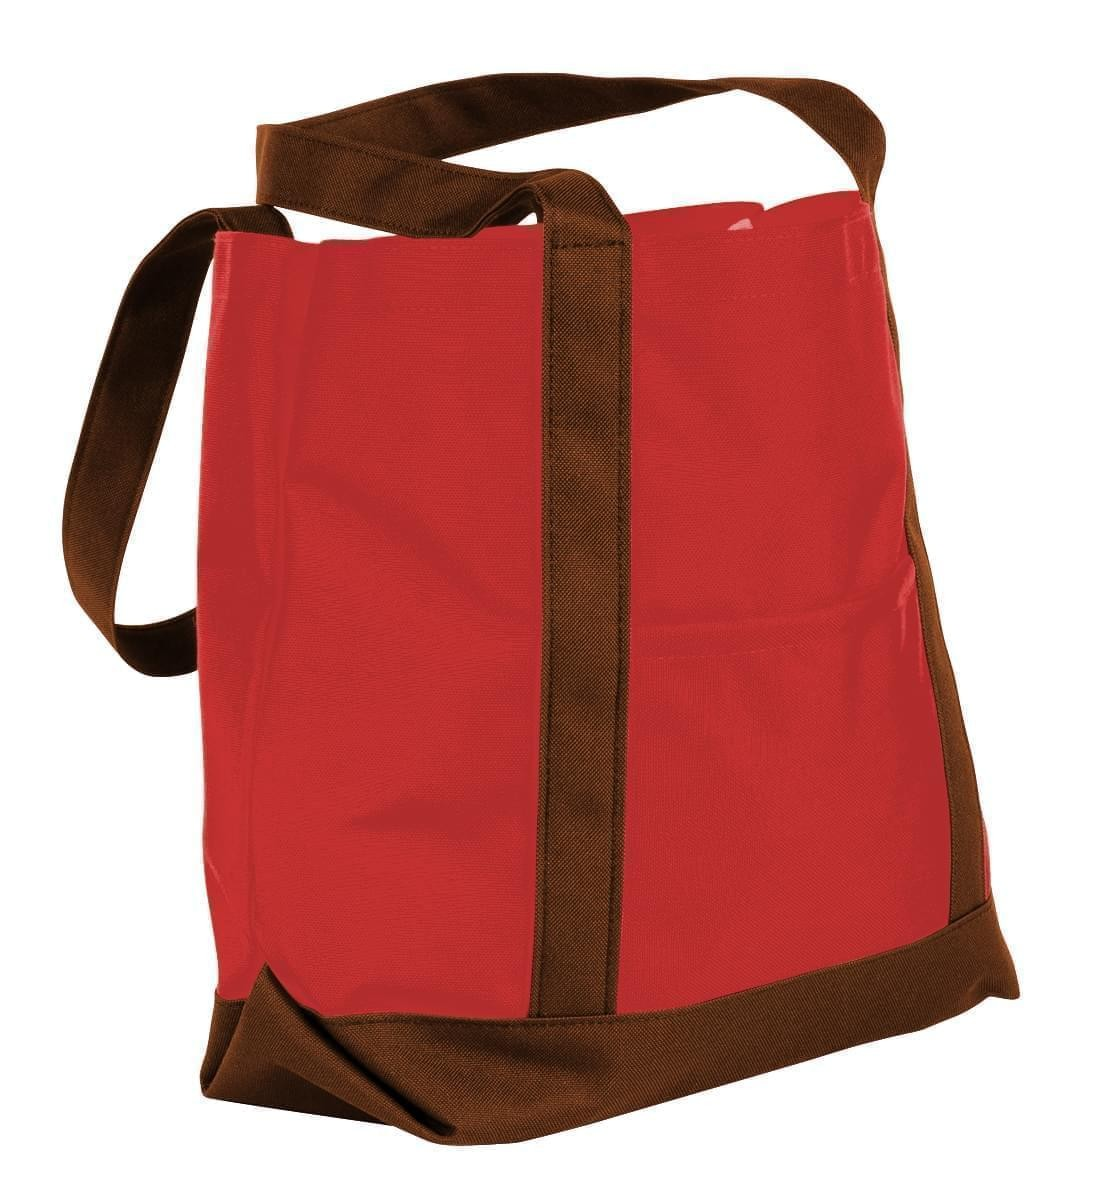 USA Made Canvas Fashion Tote Bags, Red-Brown, XAACL1UAED